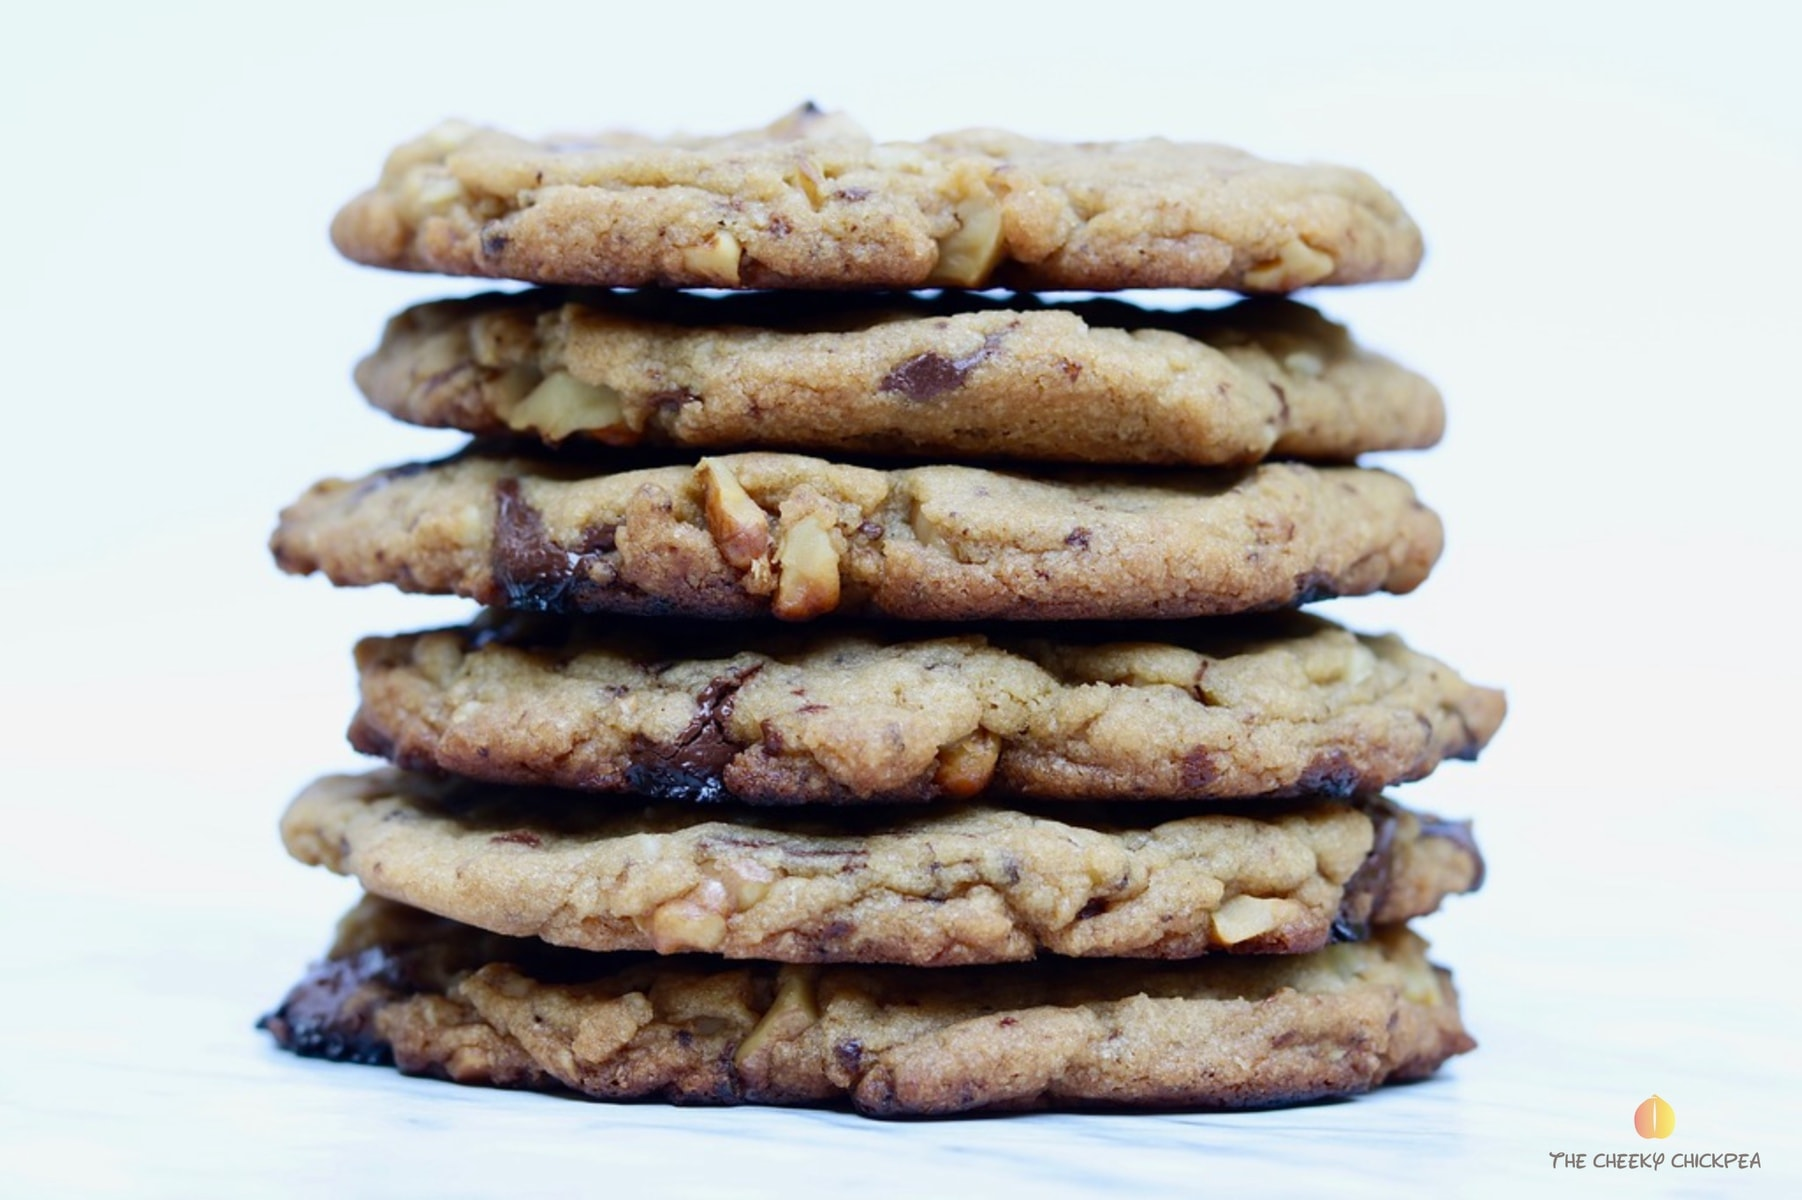 tasty vegan chocolate chip cookies stacked on a marble countertop